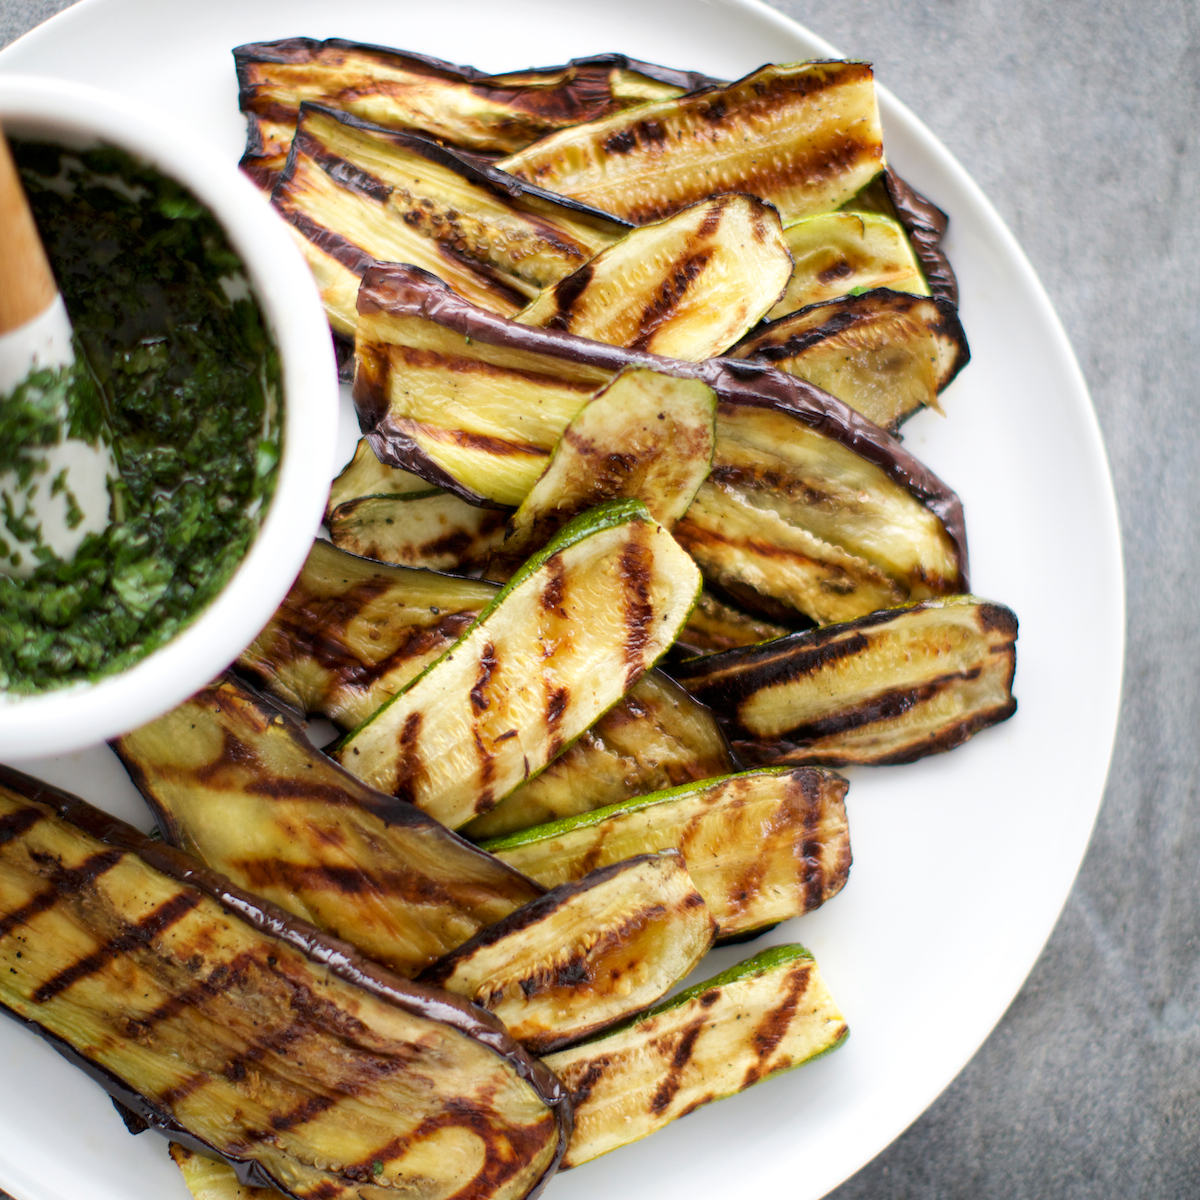 Day 20: Grilled Eggplant and Zucchini Salad with Salsa Verde